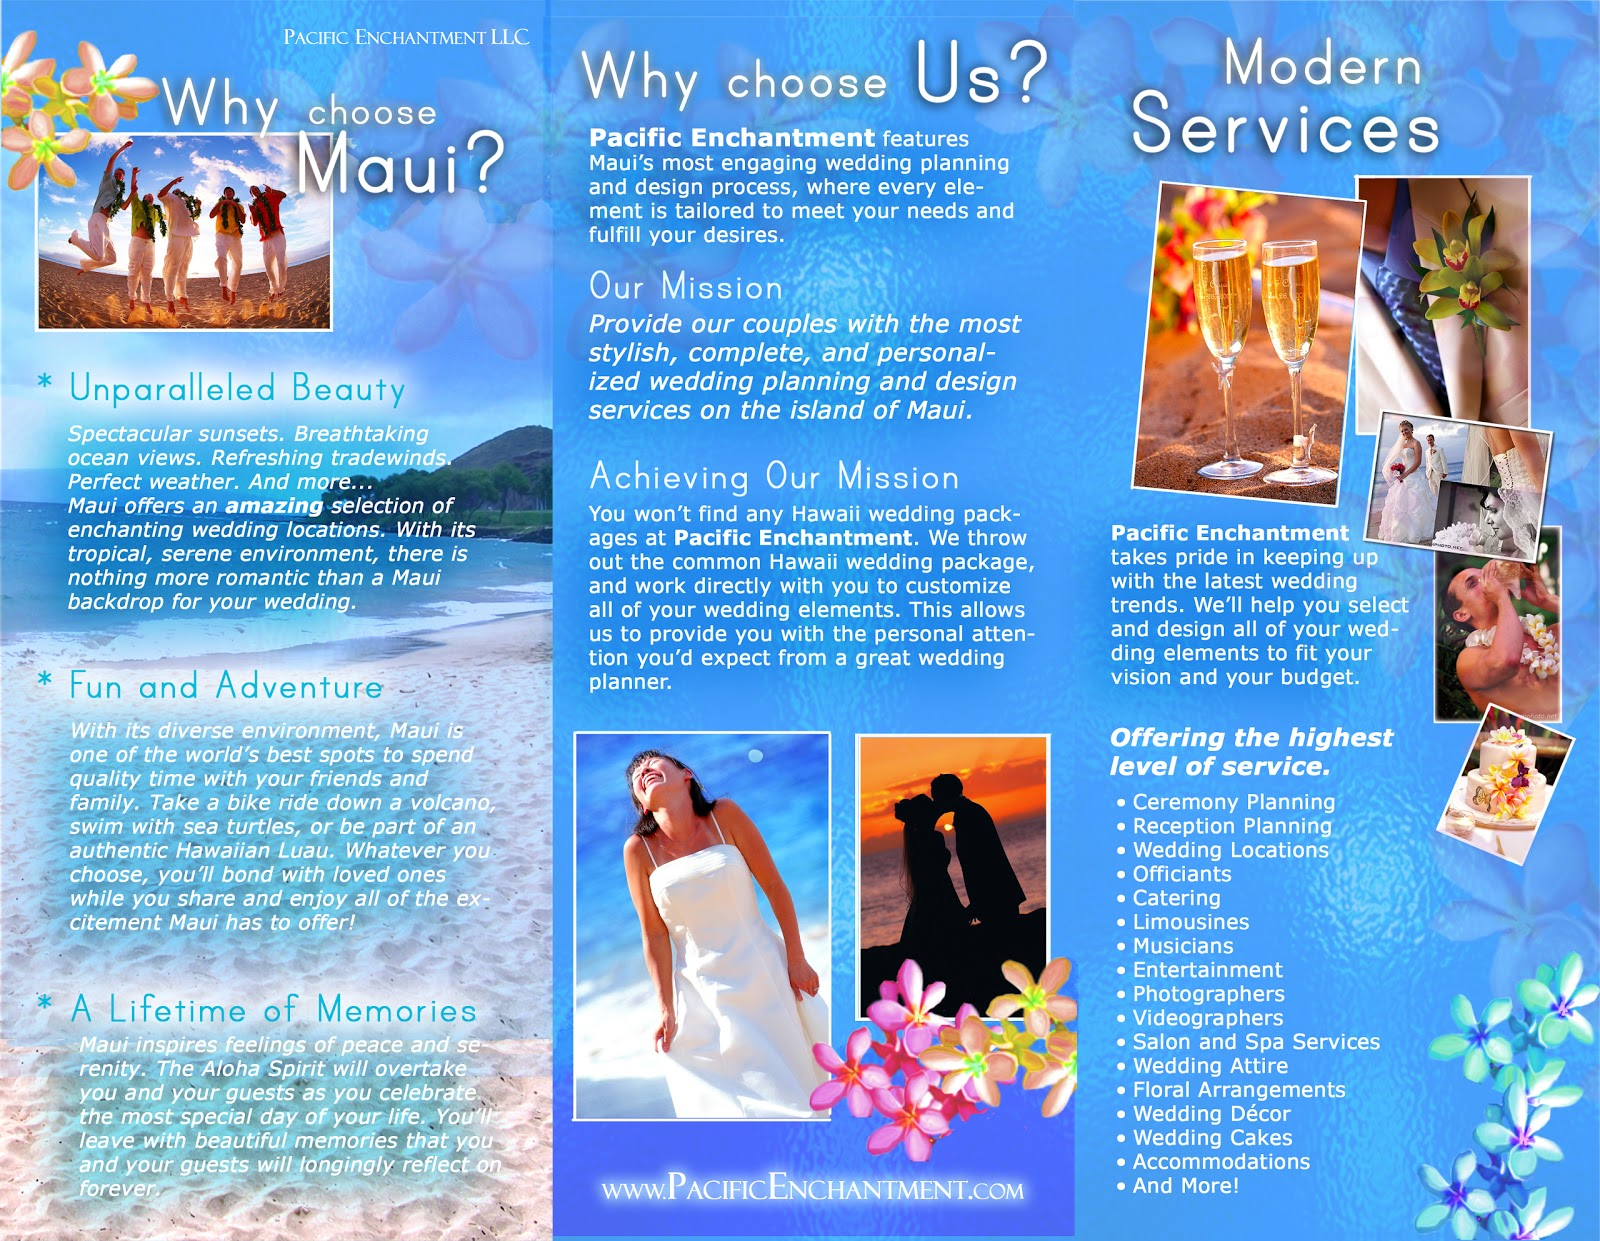 templates of brochures - brochure kiosk pics brochure for hawaii